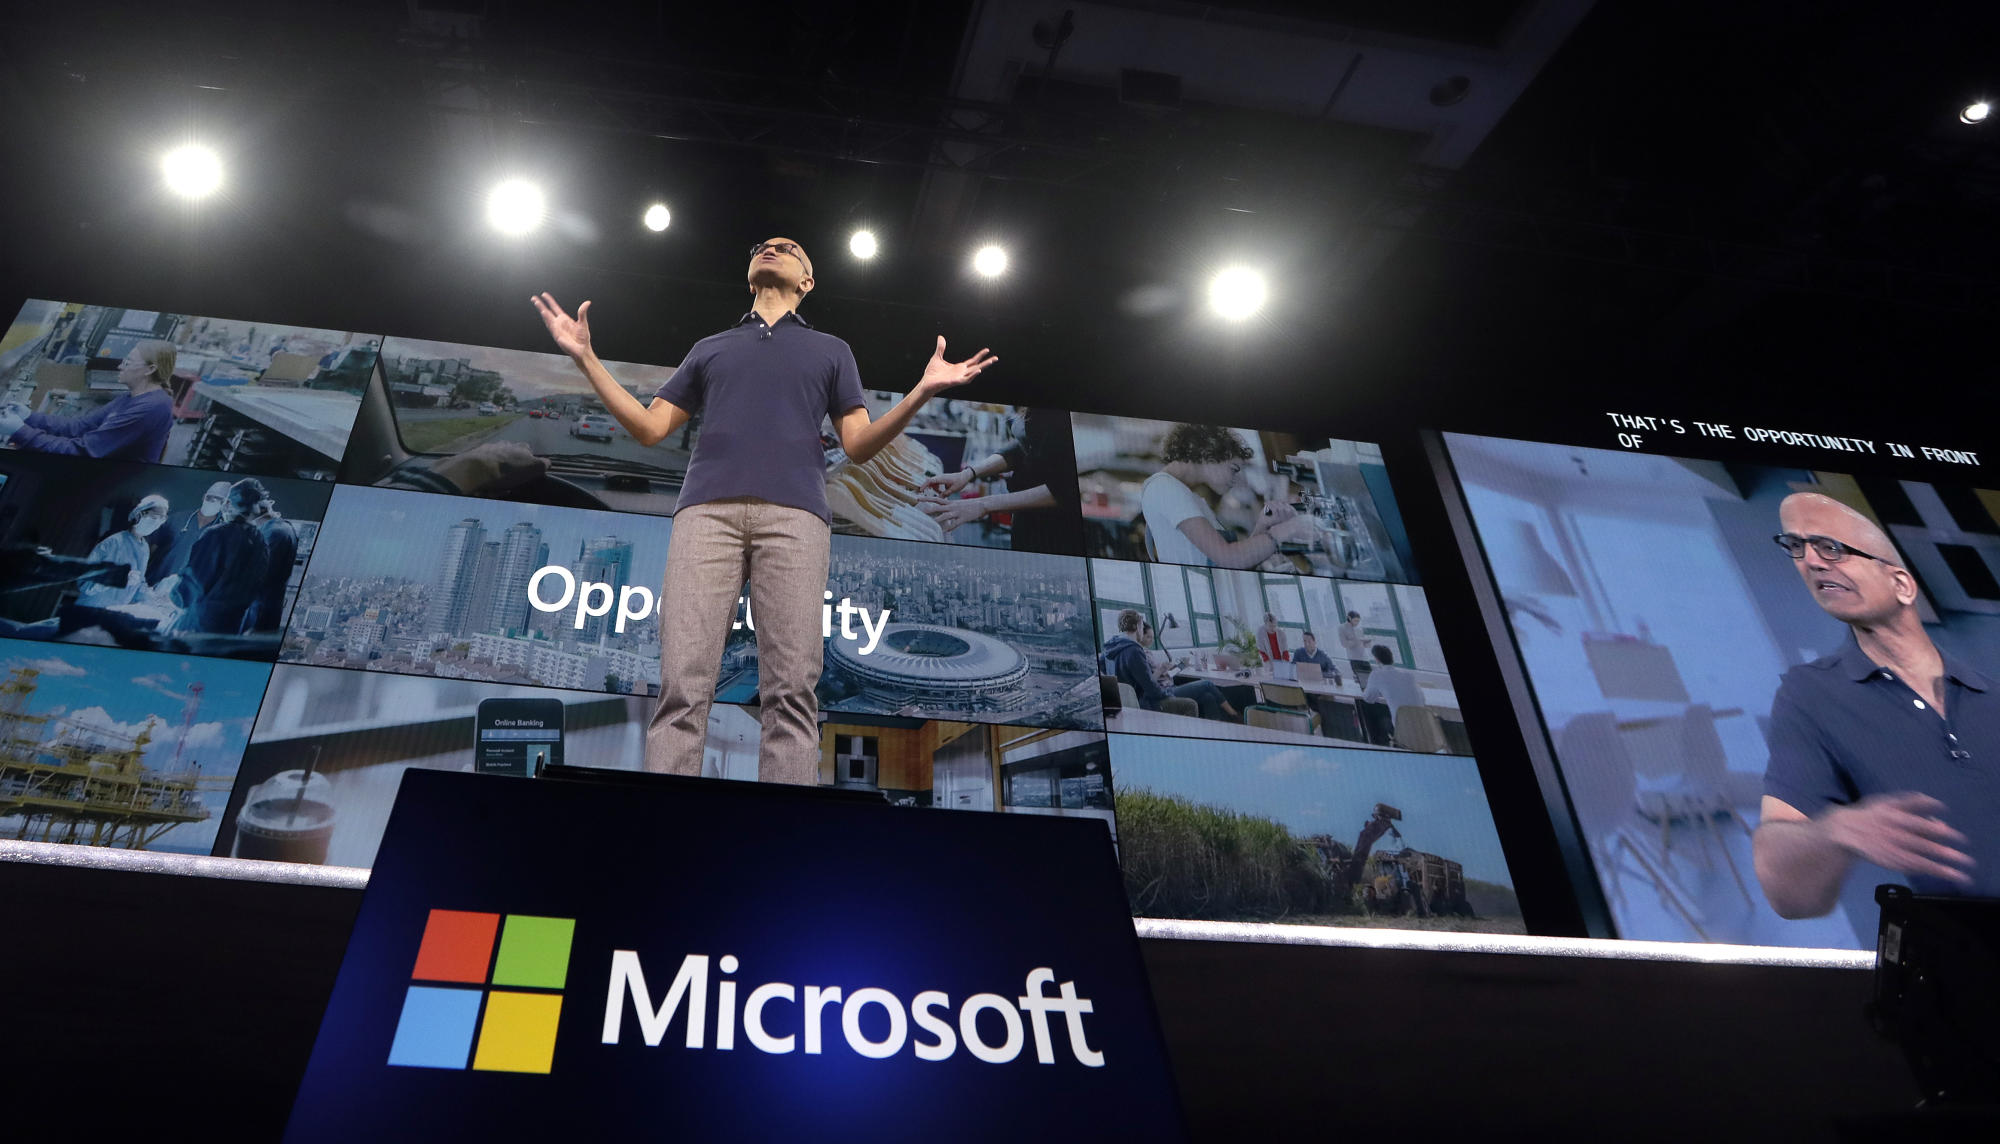 microsoft-is-set-to-report-q3-2021-earnings,-and-all-eyes-will-be-on-azure-and-pc-sales